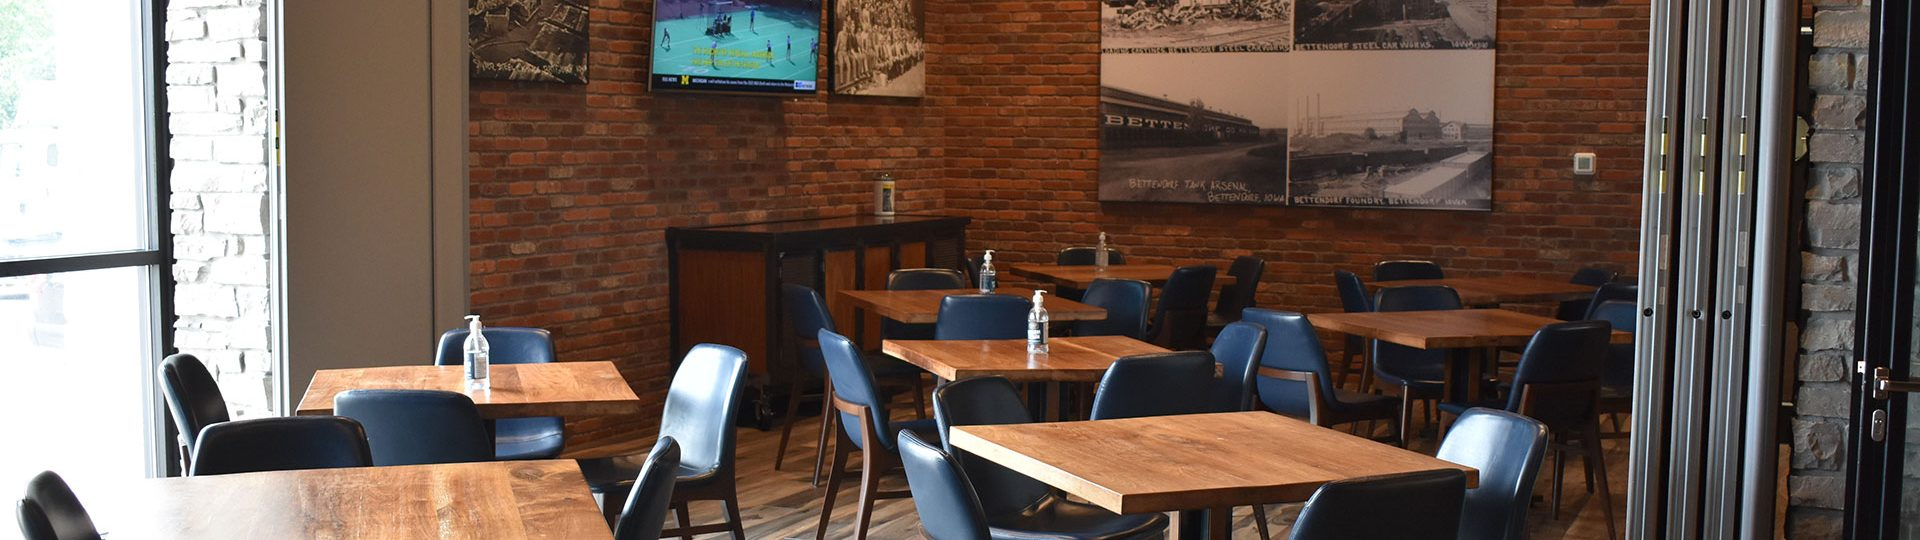 Dining tables with a TV showing a football game in the background.